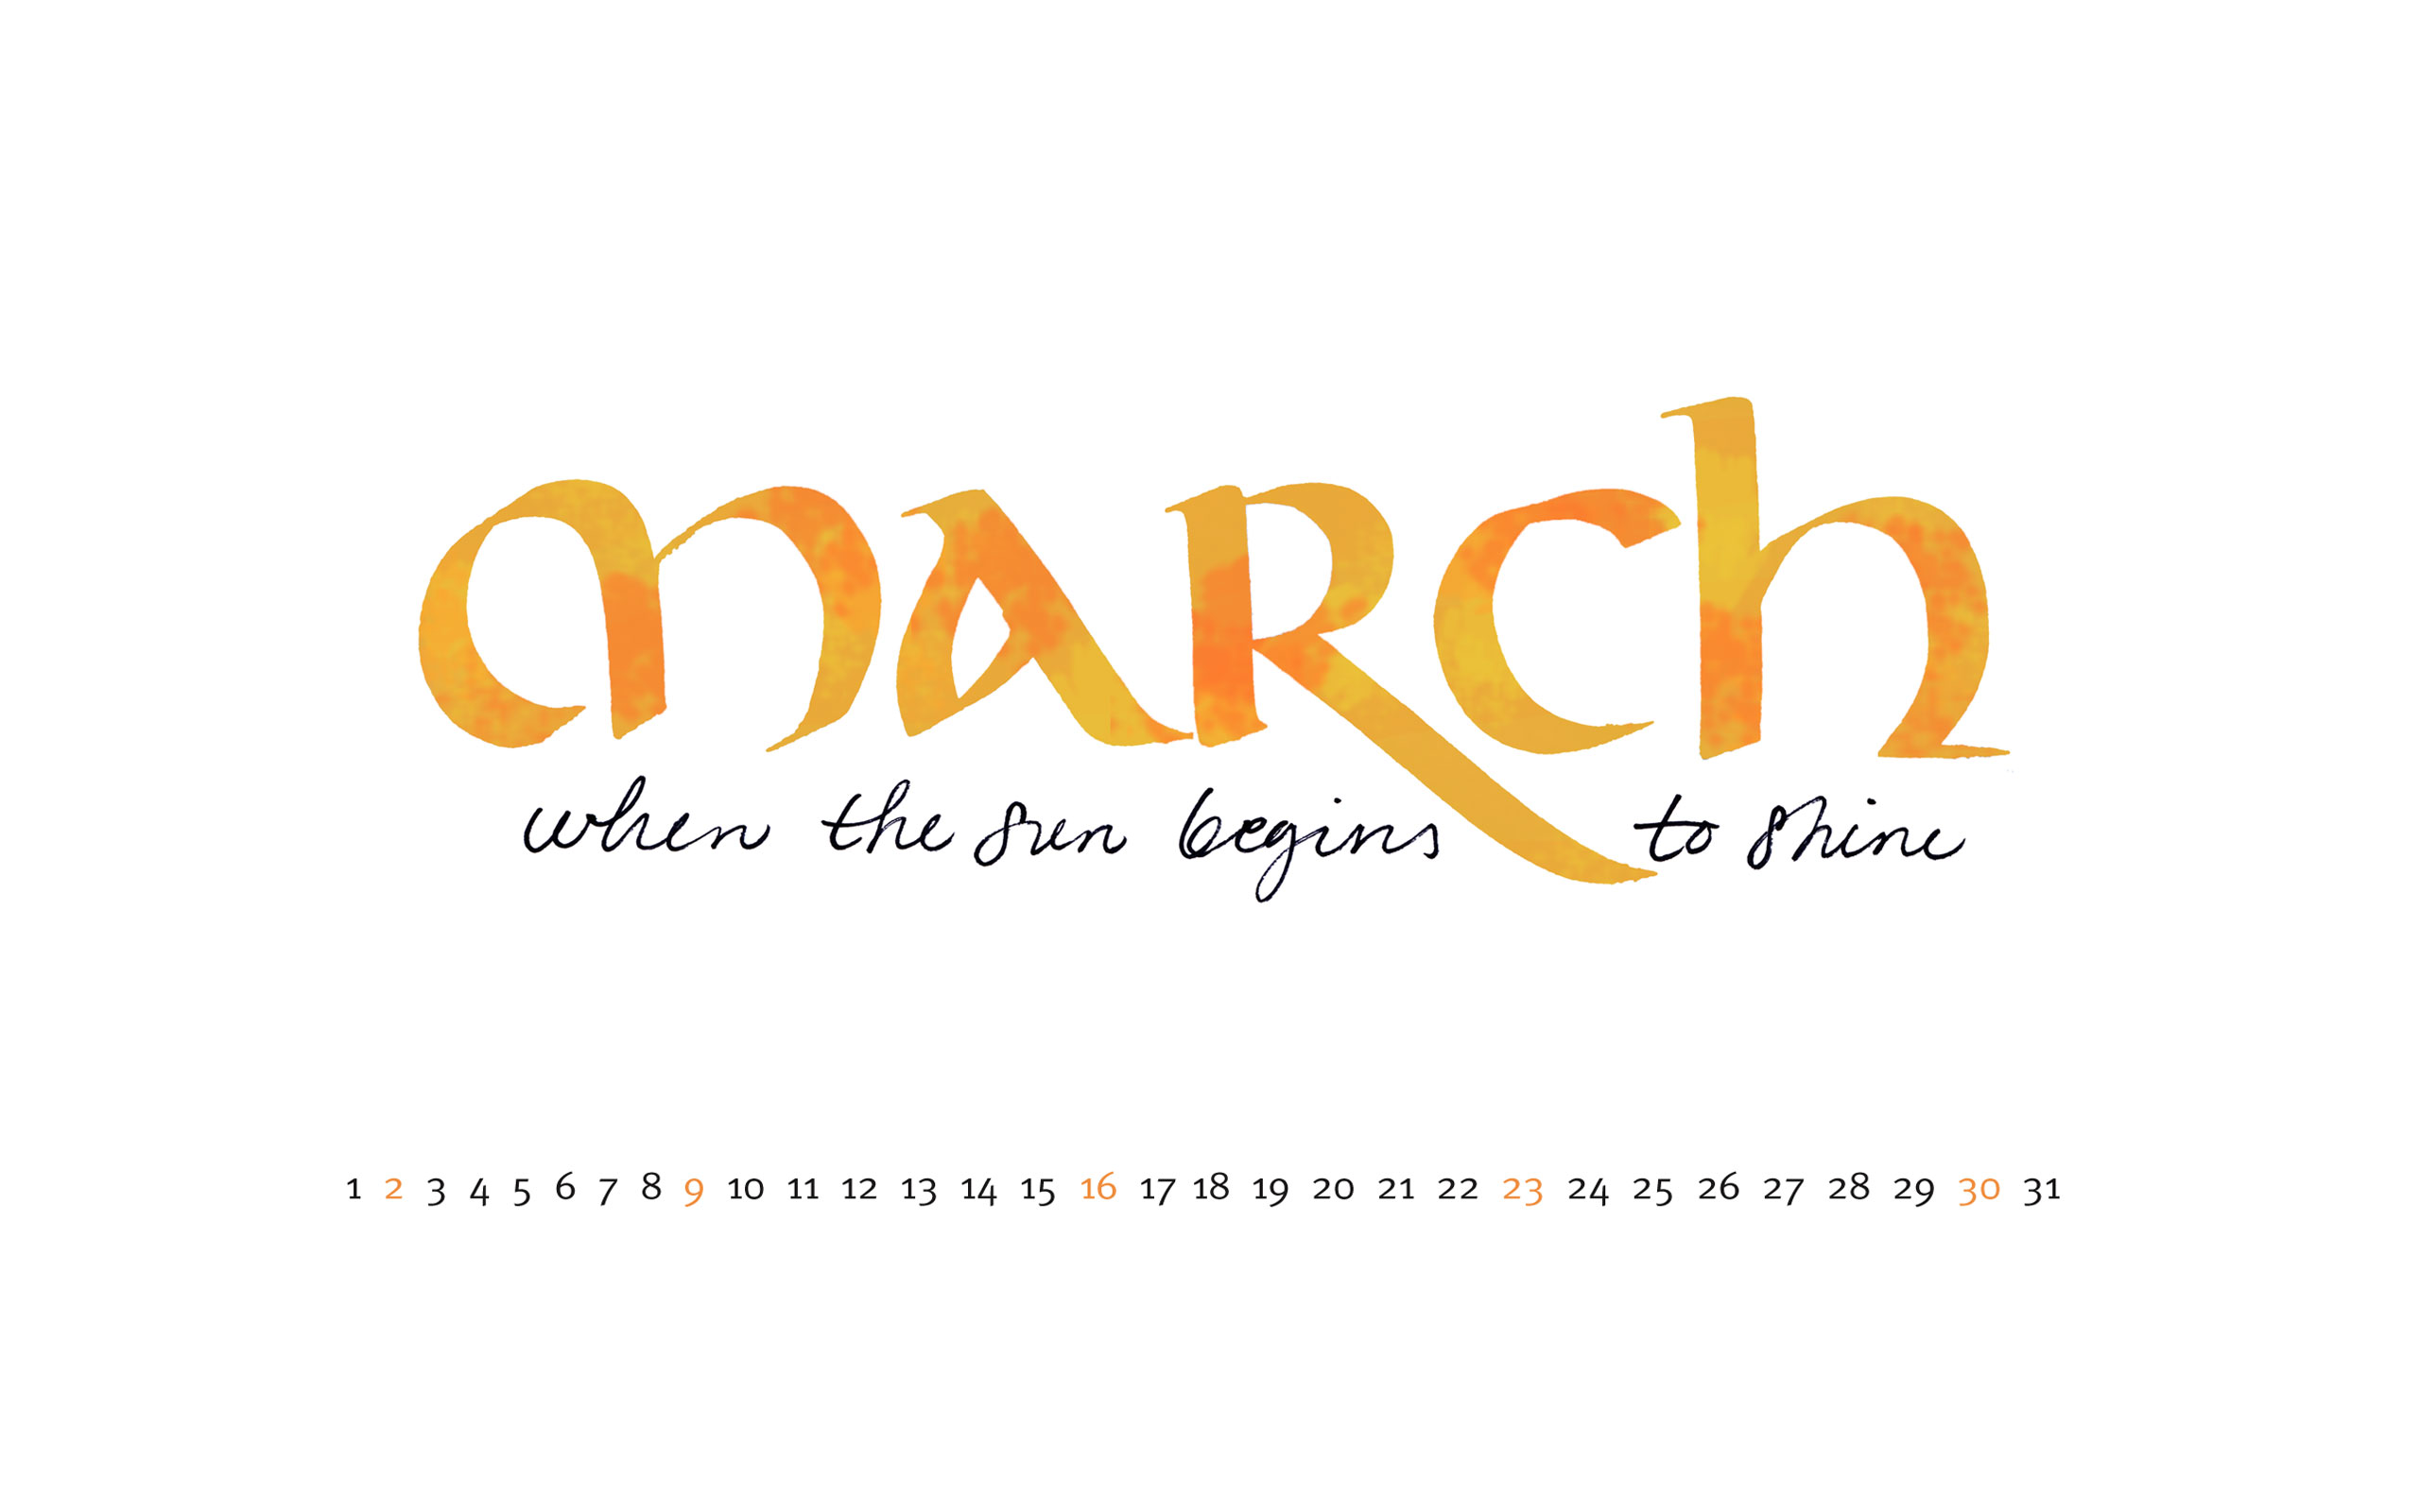 march 2014 free desktop calendar wallpaper by grafi letraspace